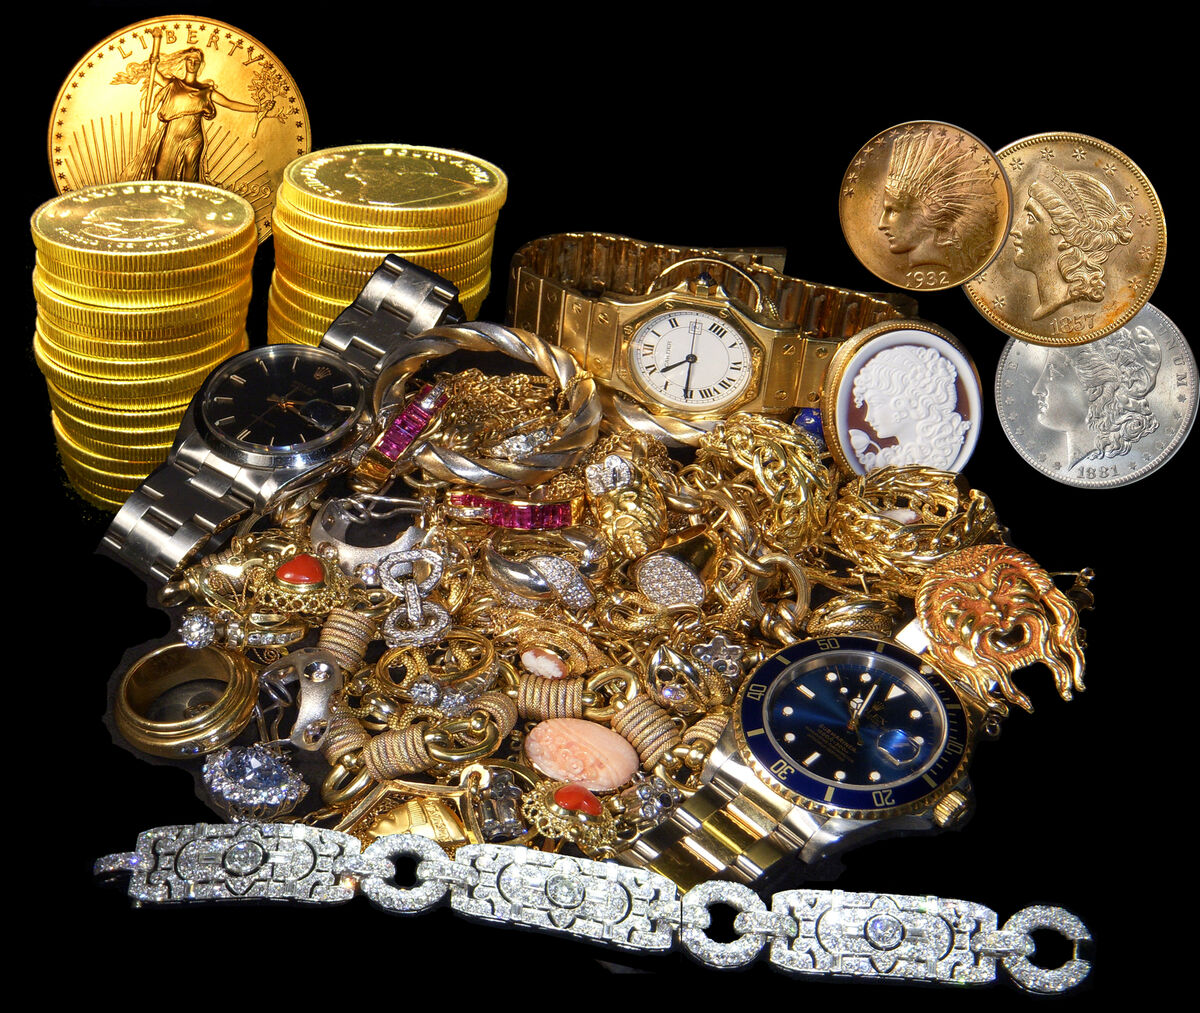 South Florida Coins and Jewelry